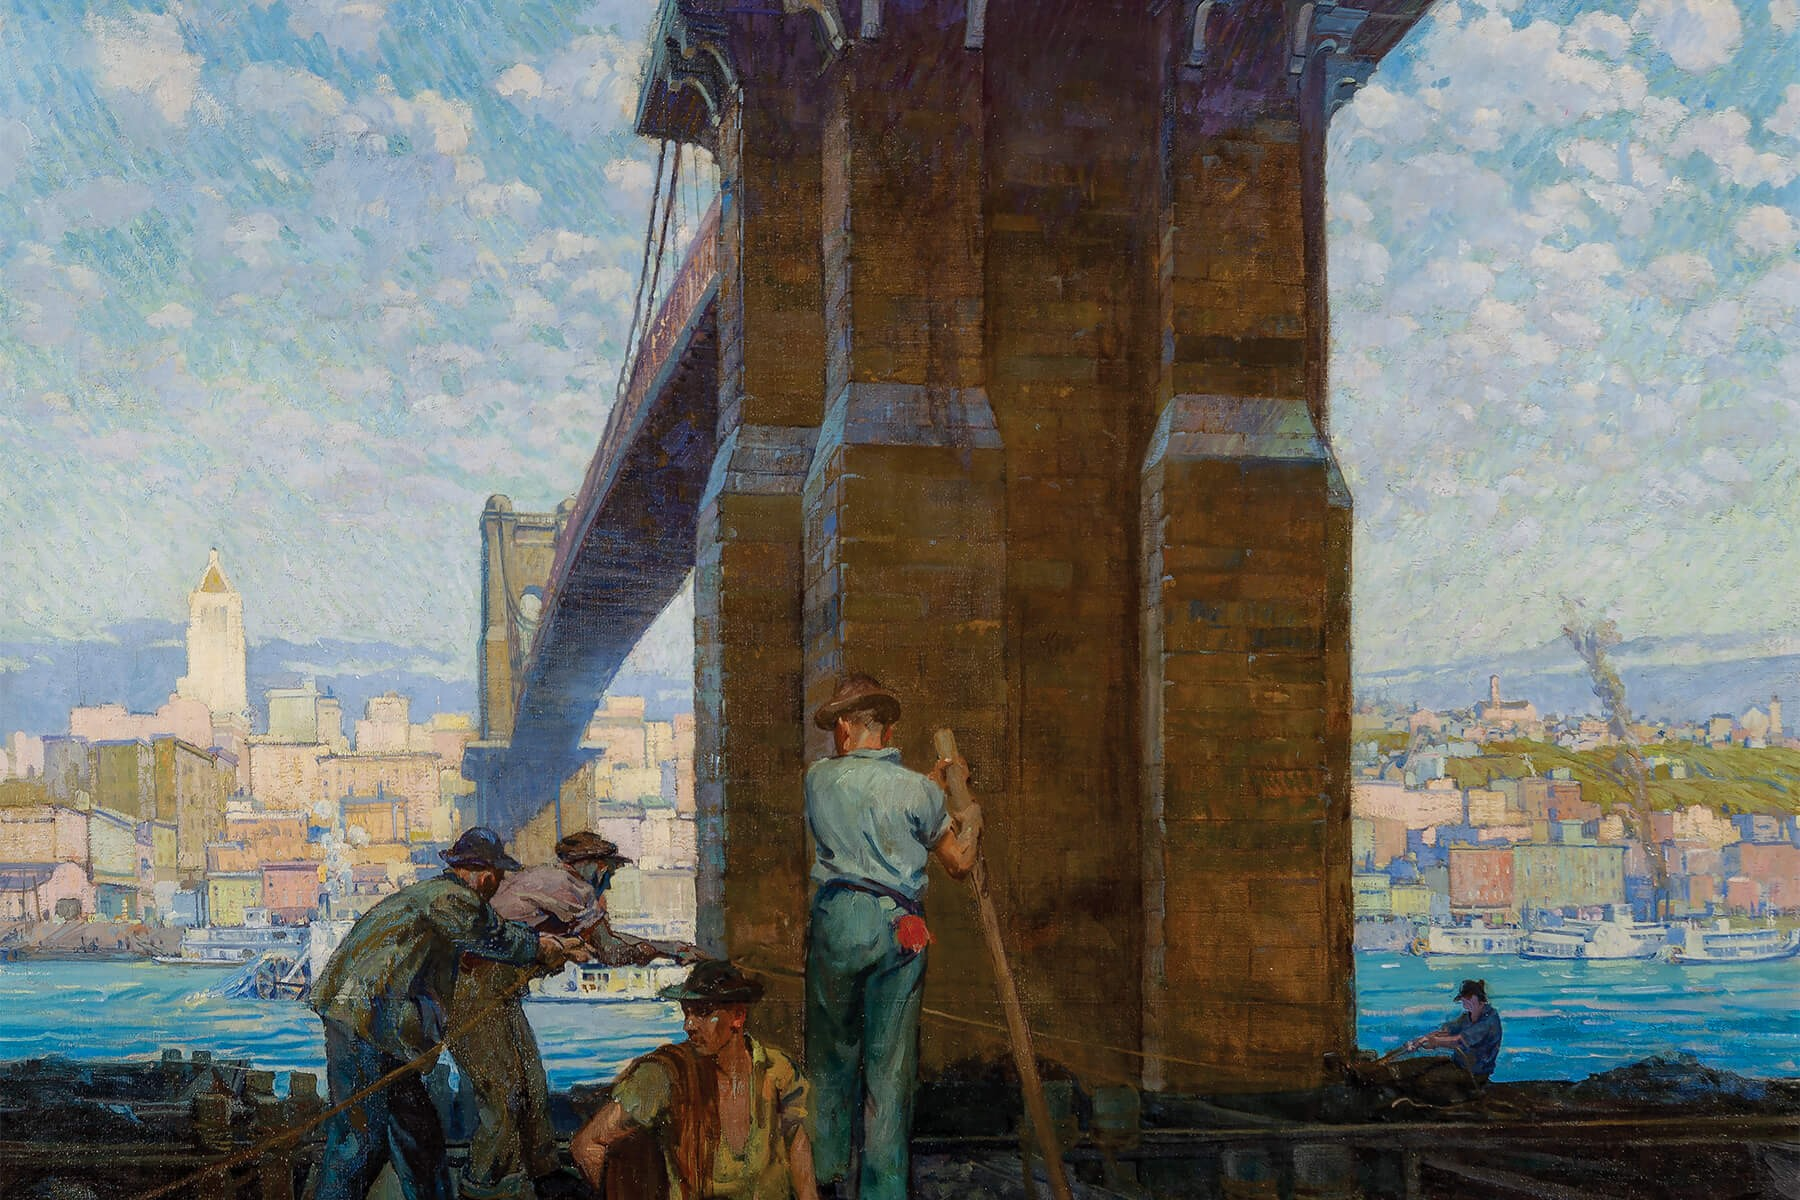 Herman Henry Wessel, Jamming Barges Under the Suspension Bridge, 1921, oil on canvas, 56 x 167 in. Collection of the University of Cincinnati